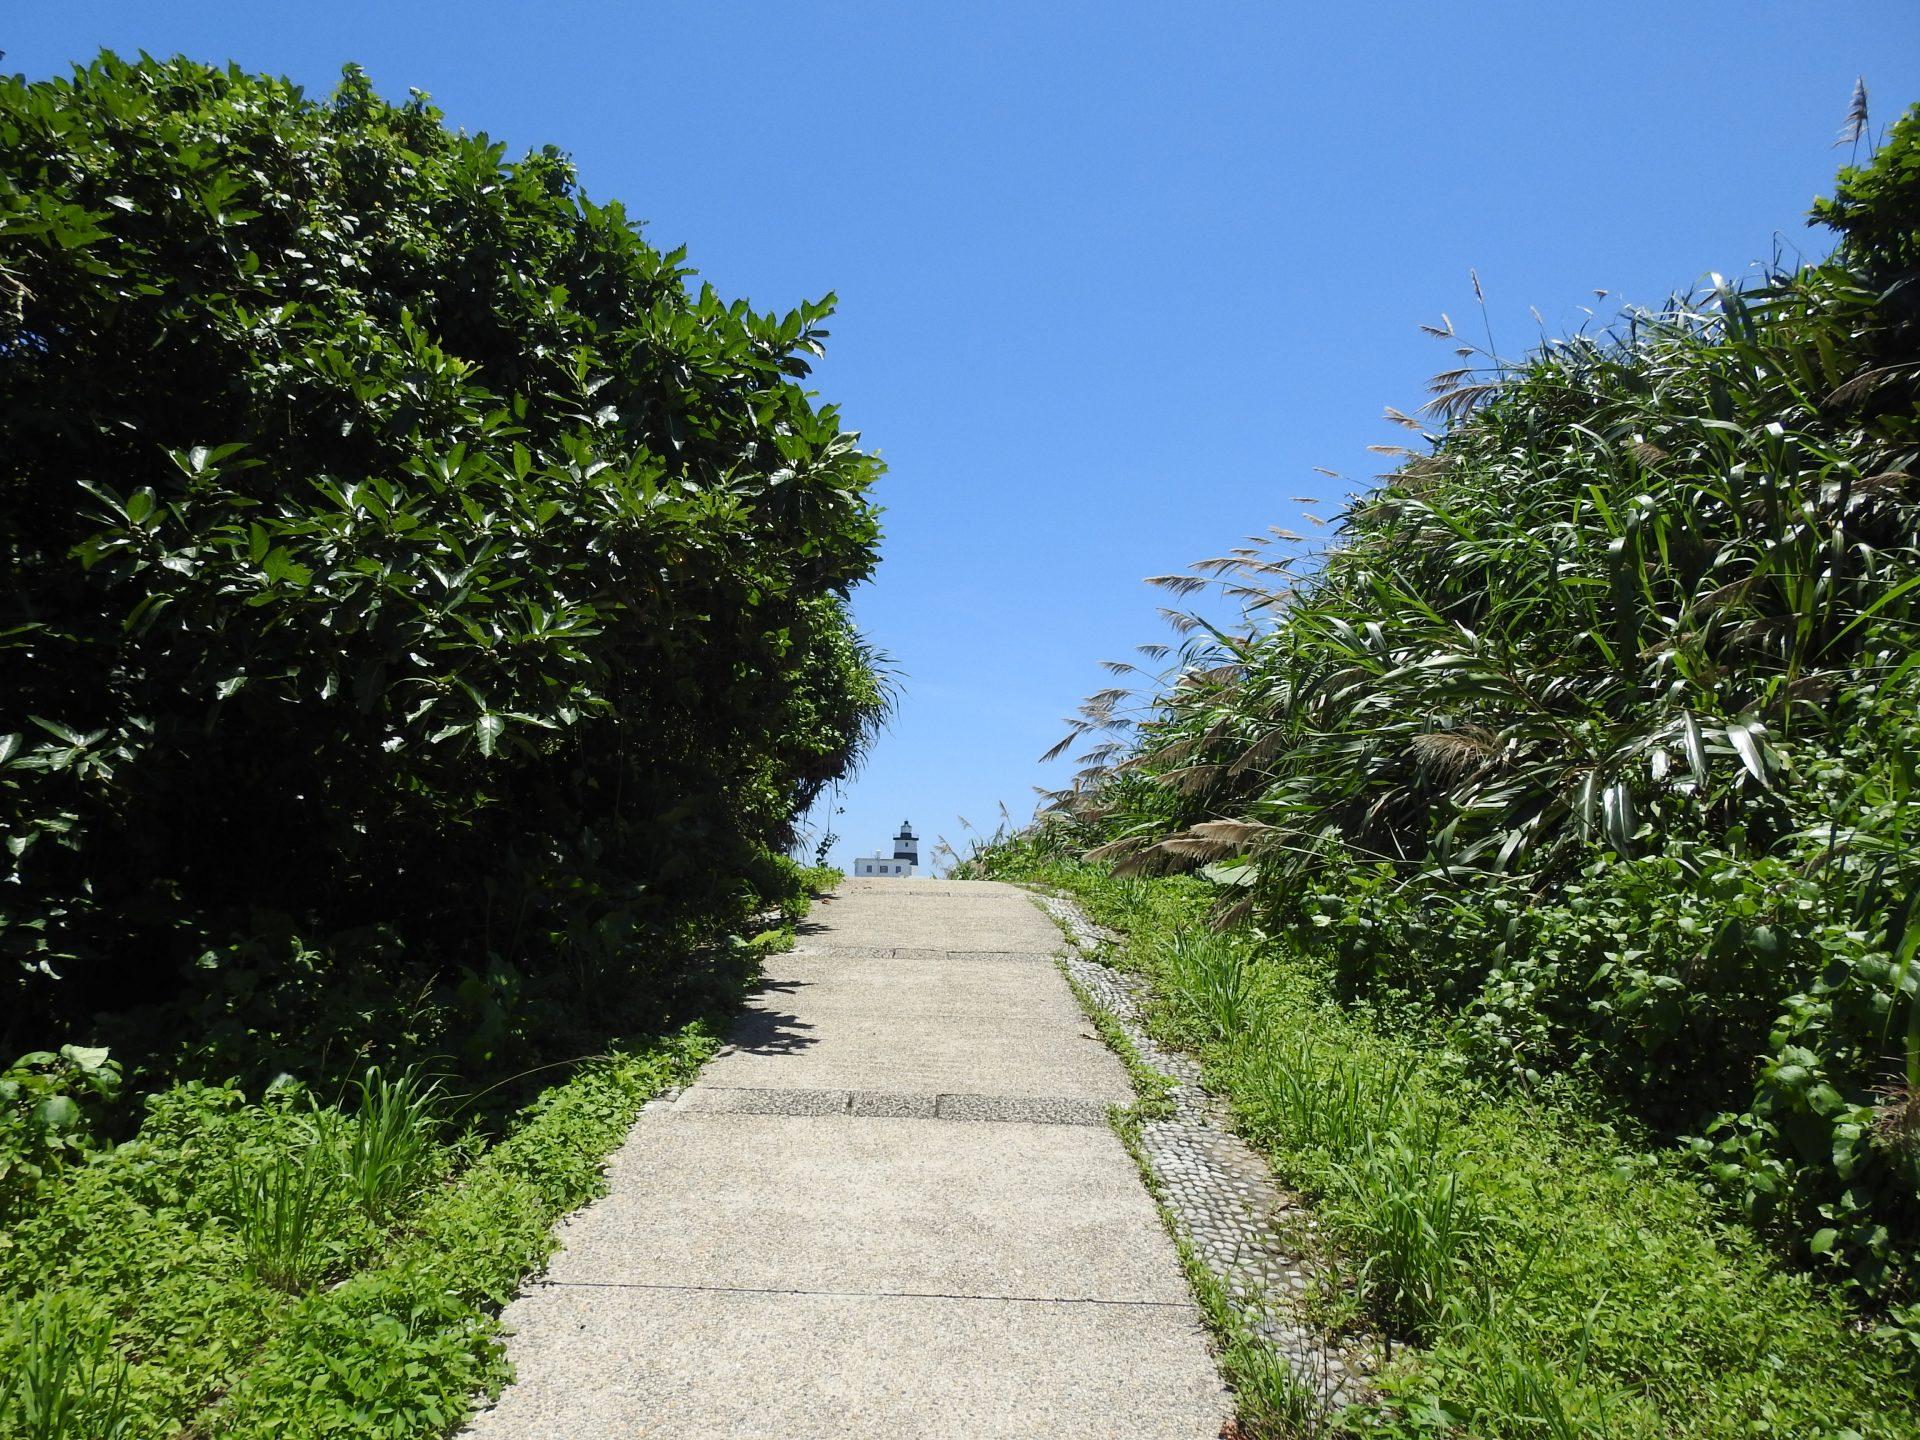 A trail in Fugui Cape Park that leads to the Fugui Cape Lighthouse. (Billy Shyu/ Vision Times)